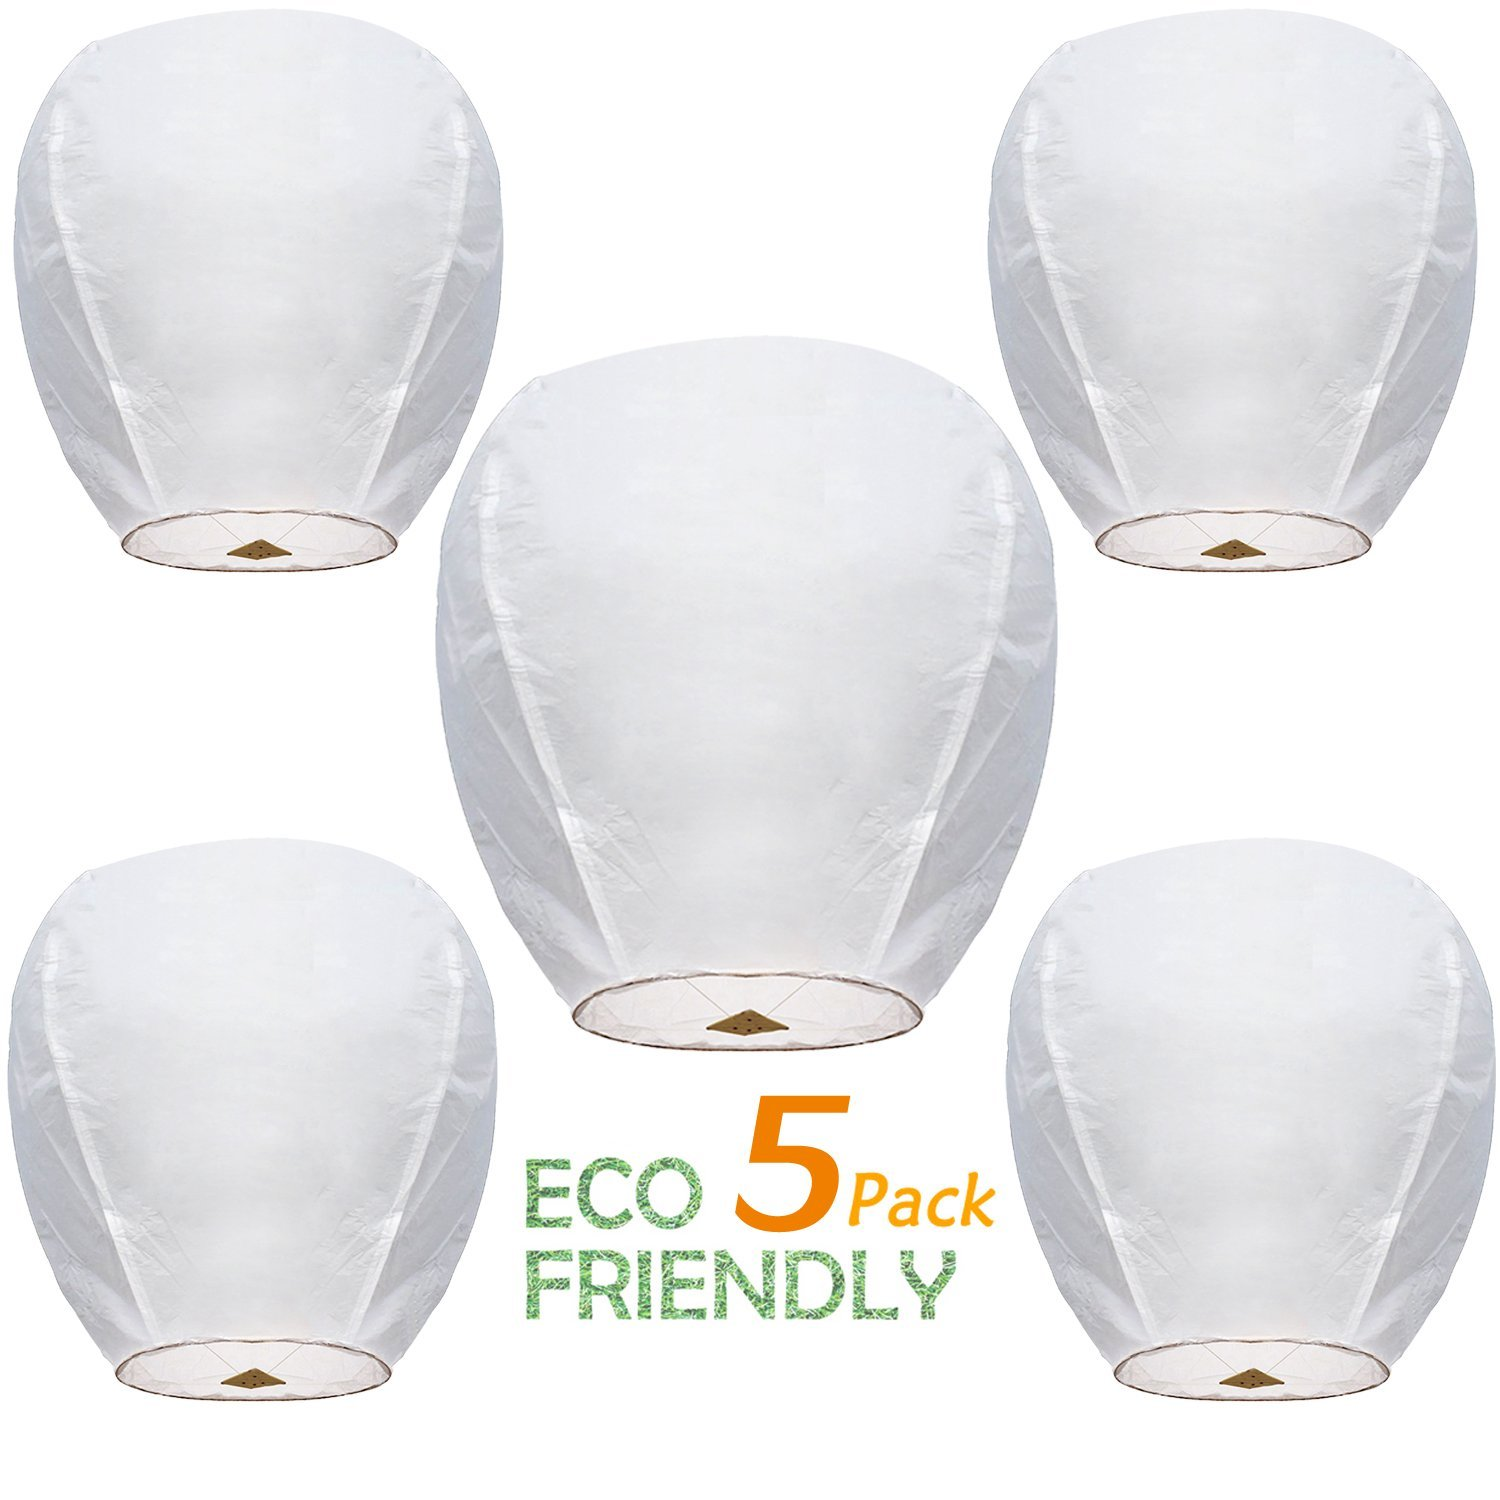 Chinese Sky Lanterns ECO Wire-Free Flying Chinese Sky Lanterns (5 Pack) - 100% Biodegradable, Environmentally Friendly Lanterns!